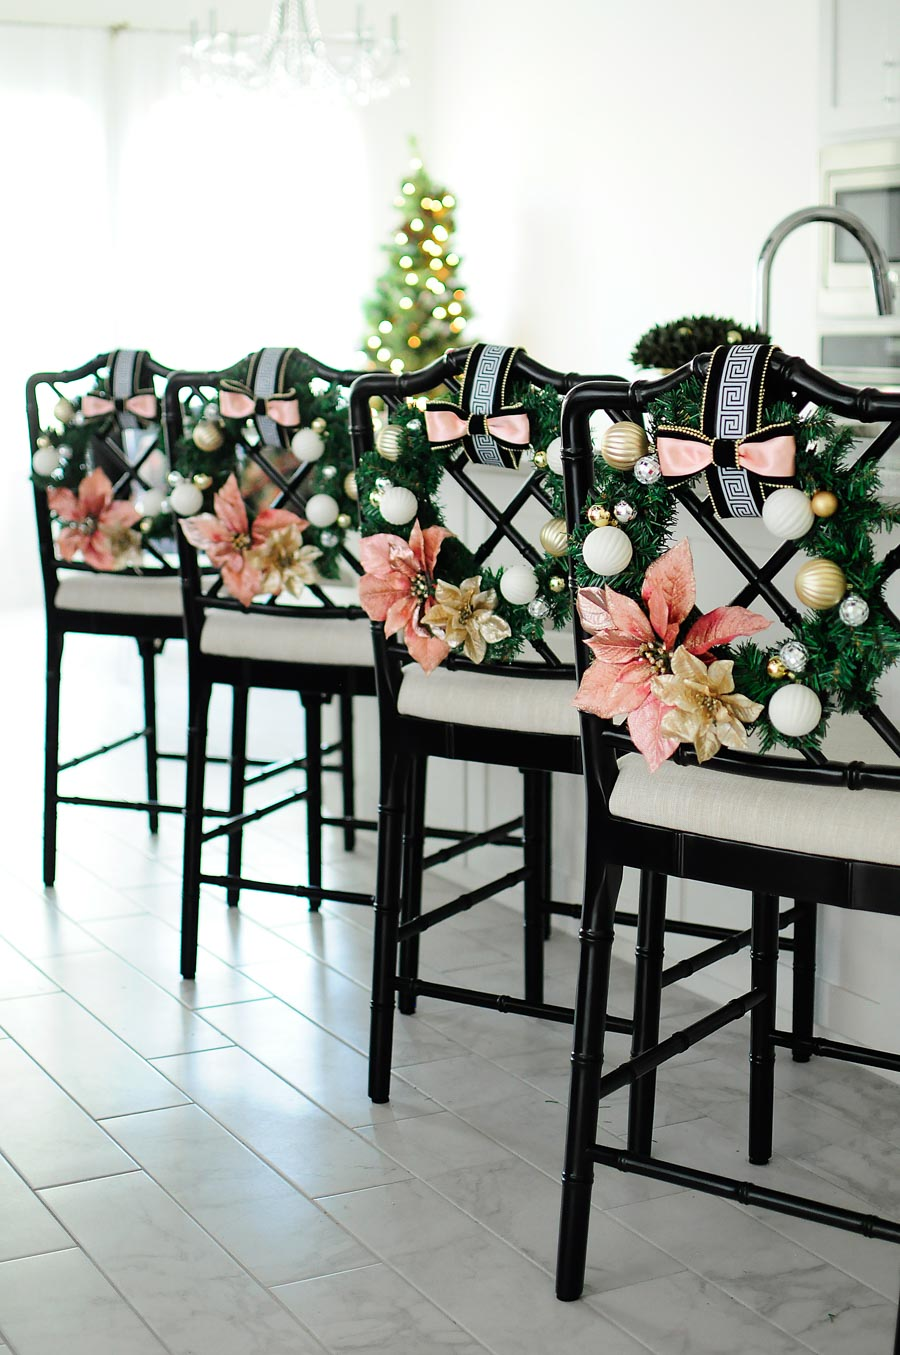 DIY blush pink or millennial pink chair wreaths made with dollar store items.